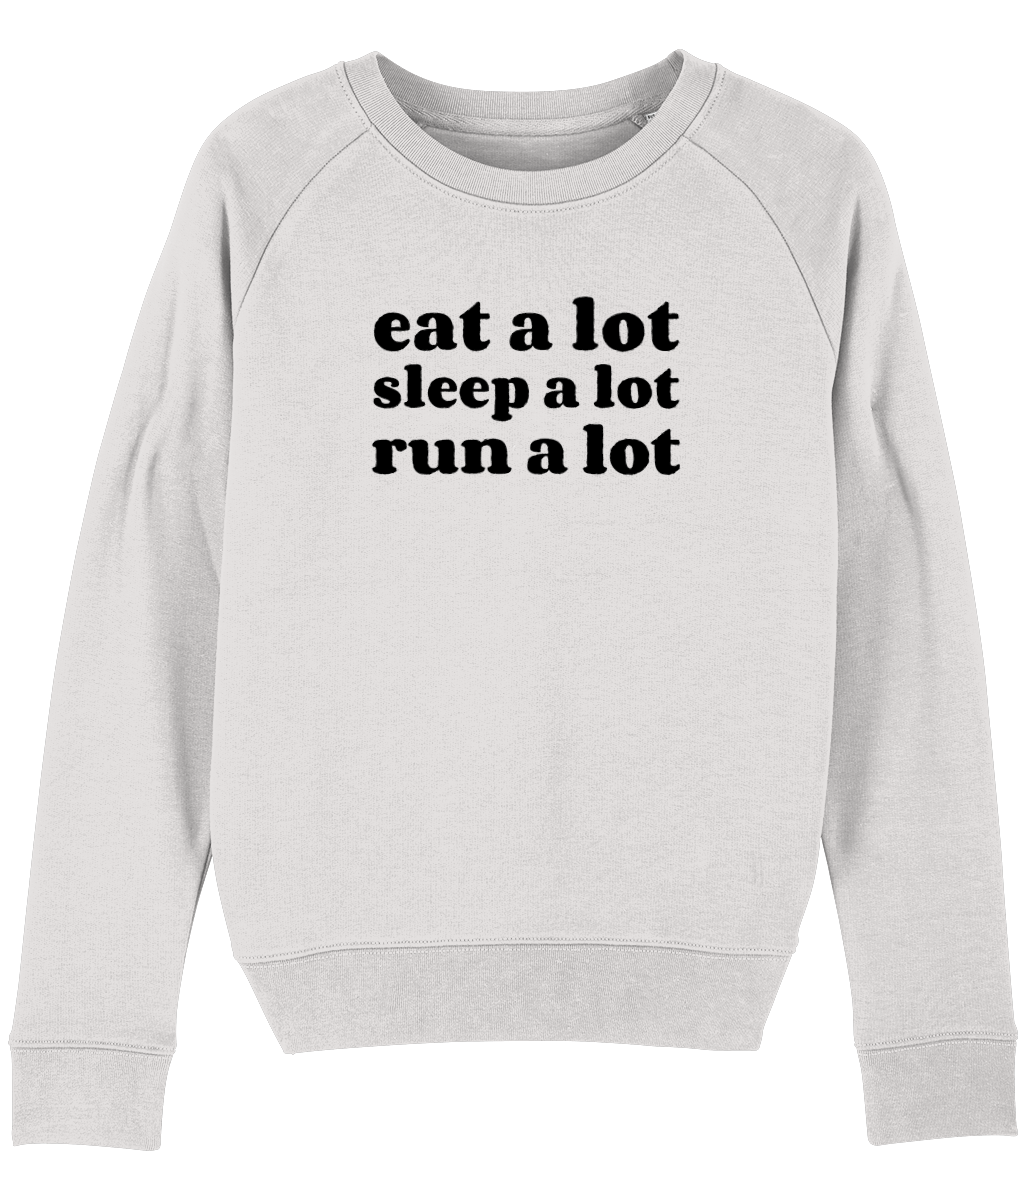 Eat a lot Sleep a lot Run a lot Sweater - Track and Fit Club